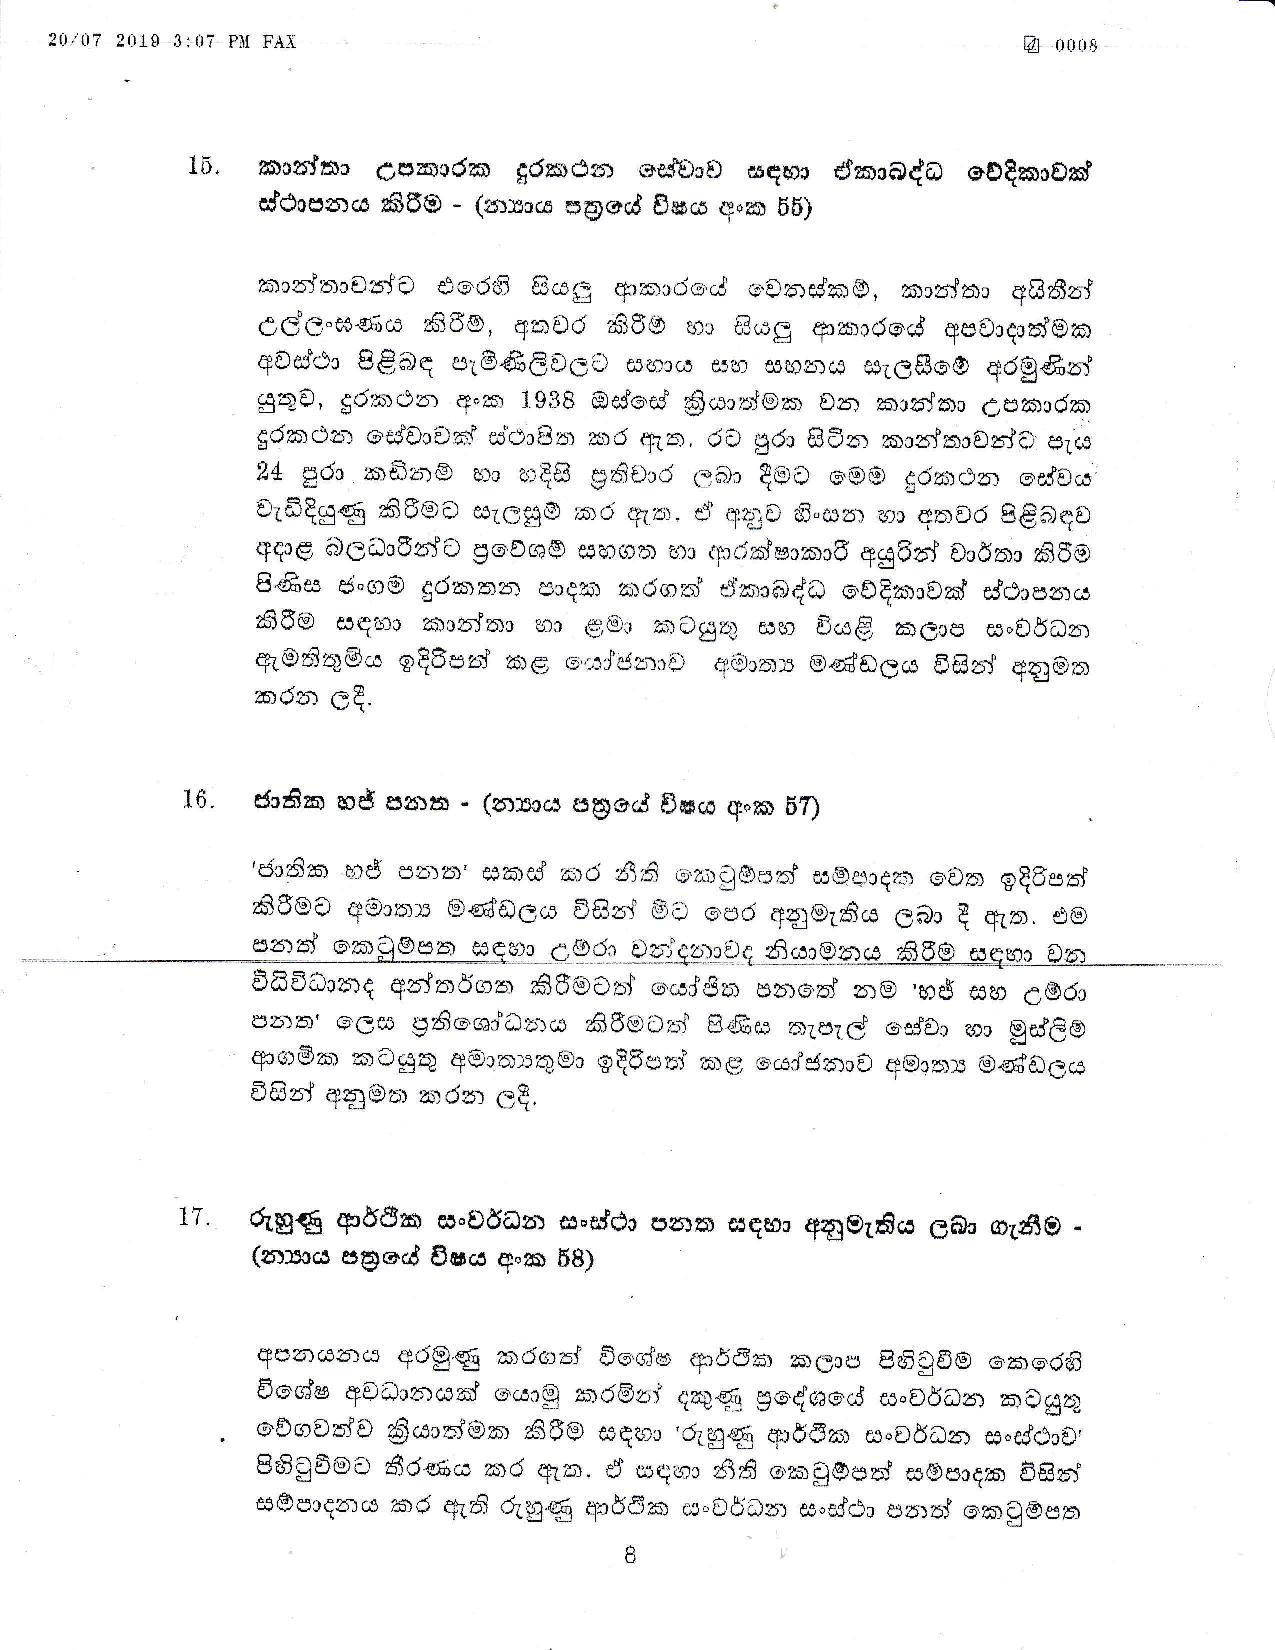 Cabinet Decision 19.07.2019 page 008